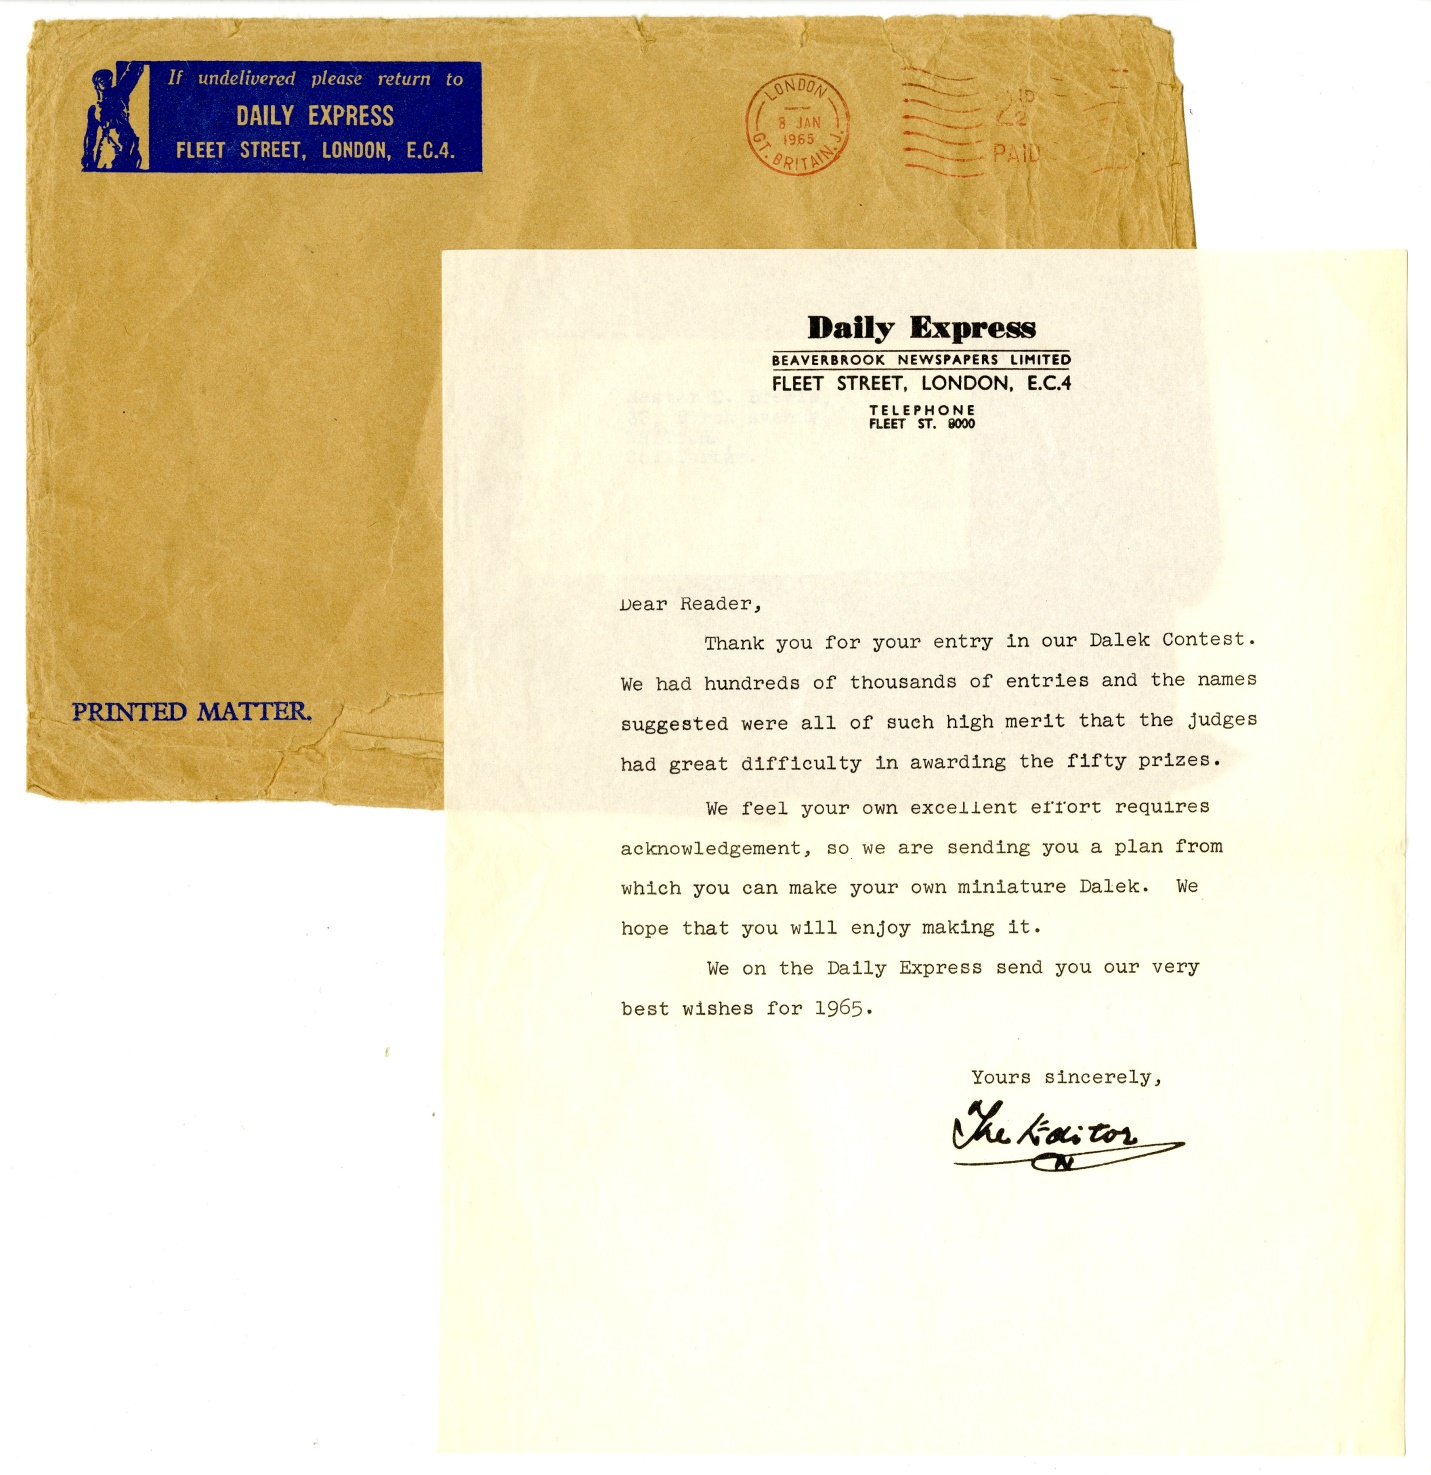 Letter and envelope from the Daily Express accompanying the cut-out Dalek model